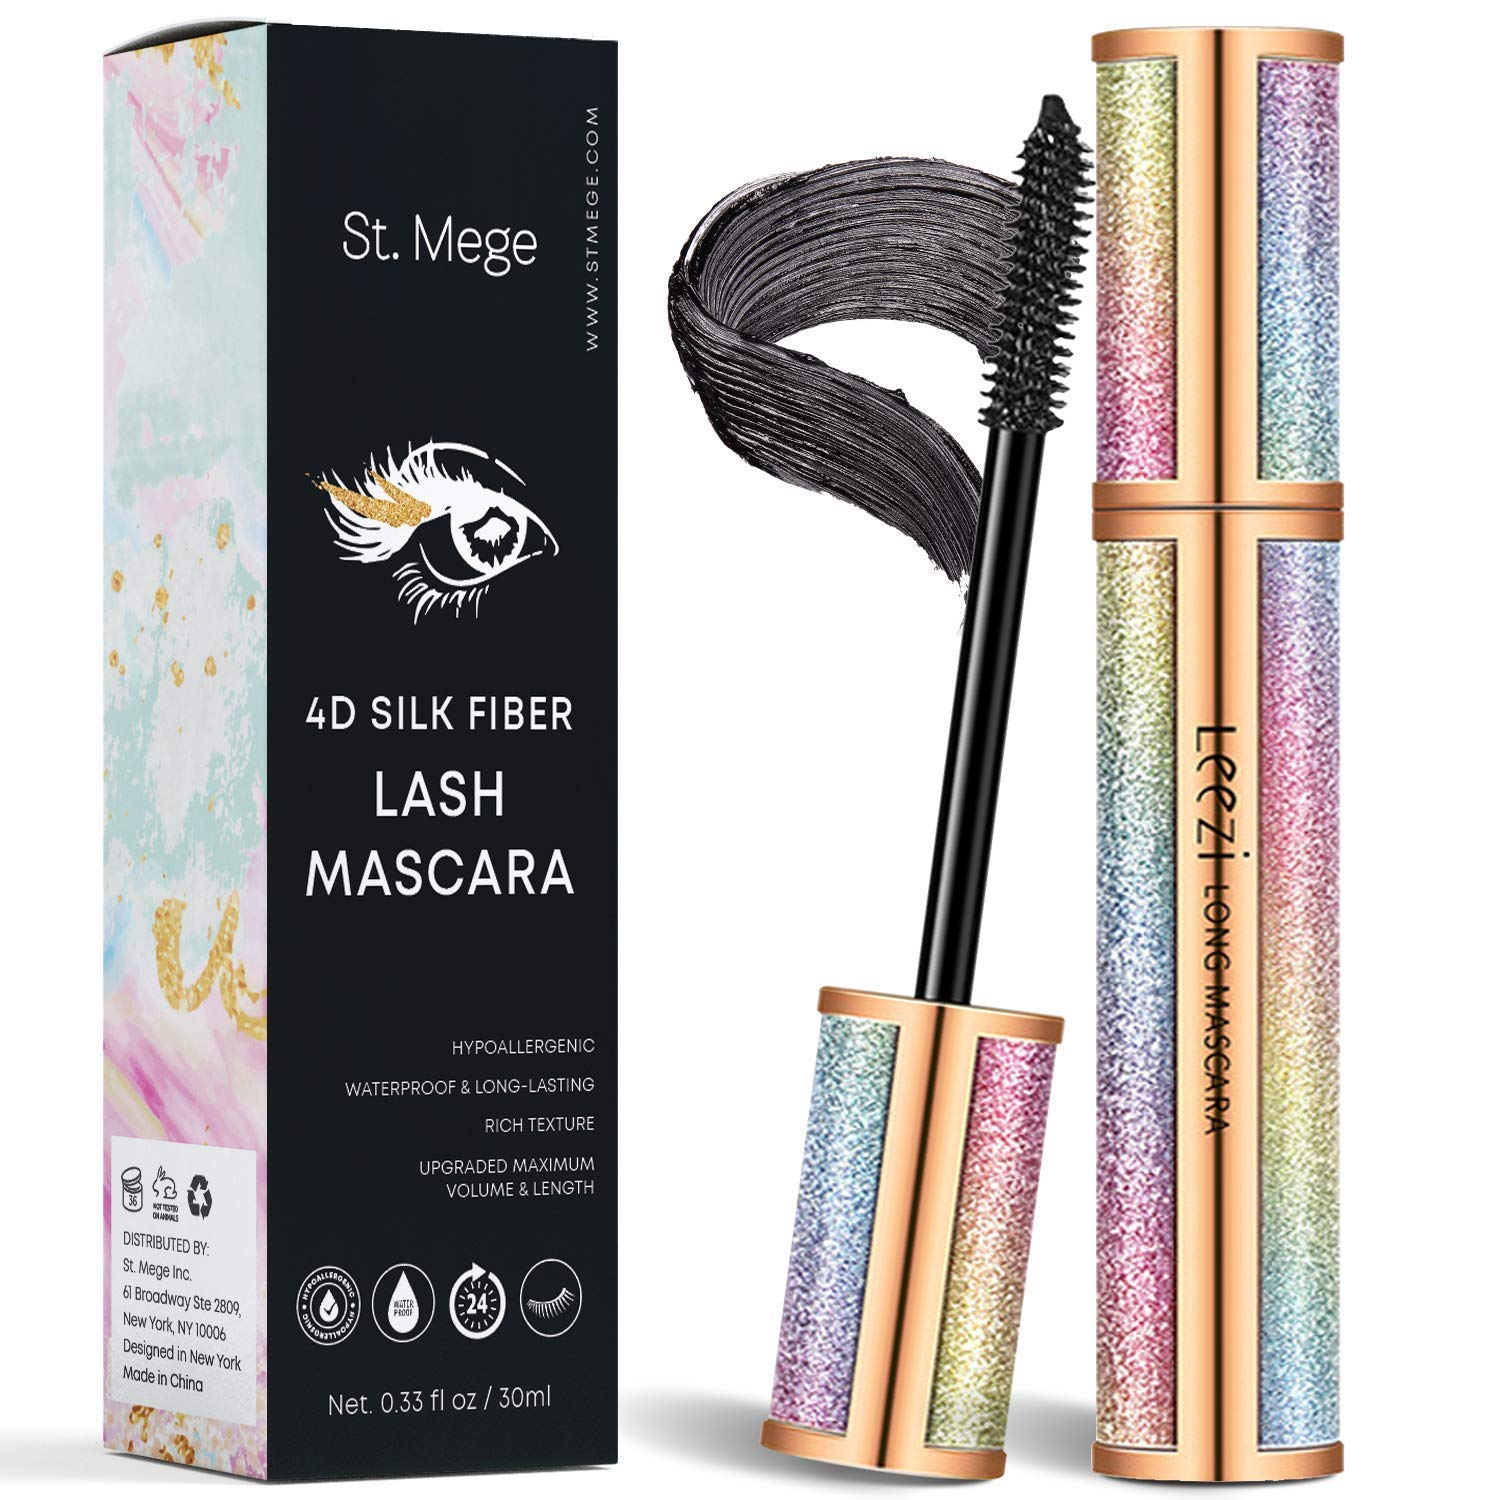 4D Silk Fiber Lash Mascara for Longer, Thicker, Voluminous Eyelashes,Natural Waterproof Smudge-Proof, All Day Exquisitely Lush, Full, Long, Thick, Smudge-Proof Eyelashes (Black)